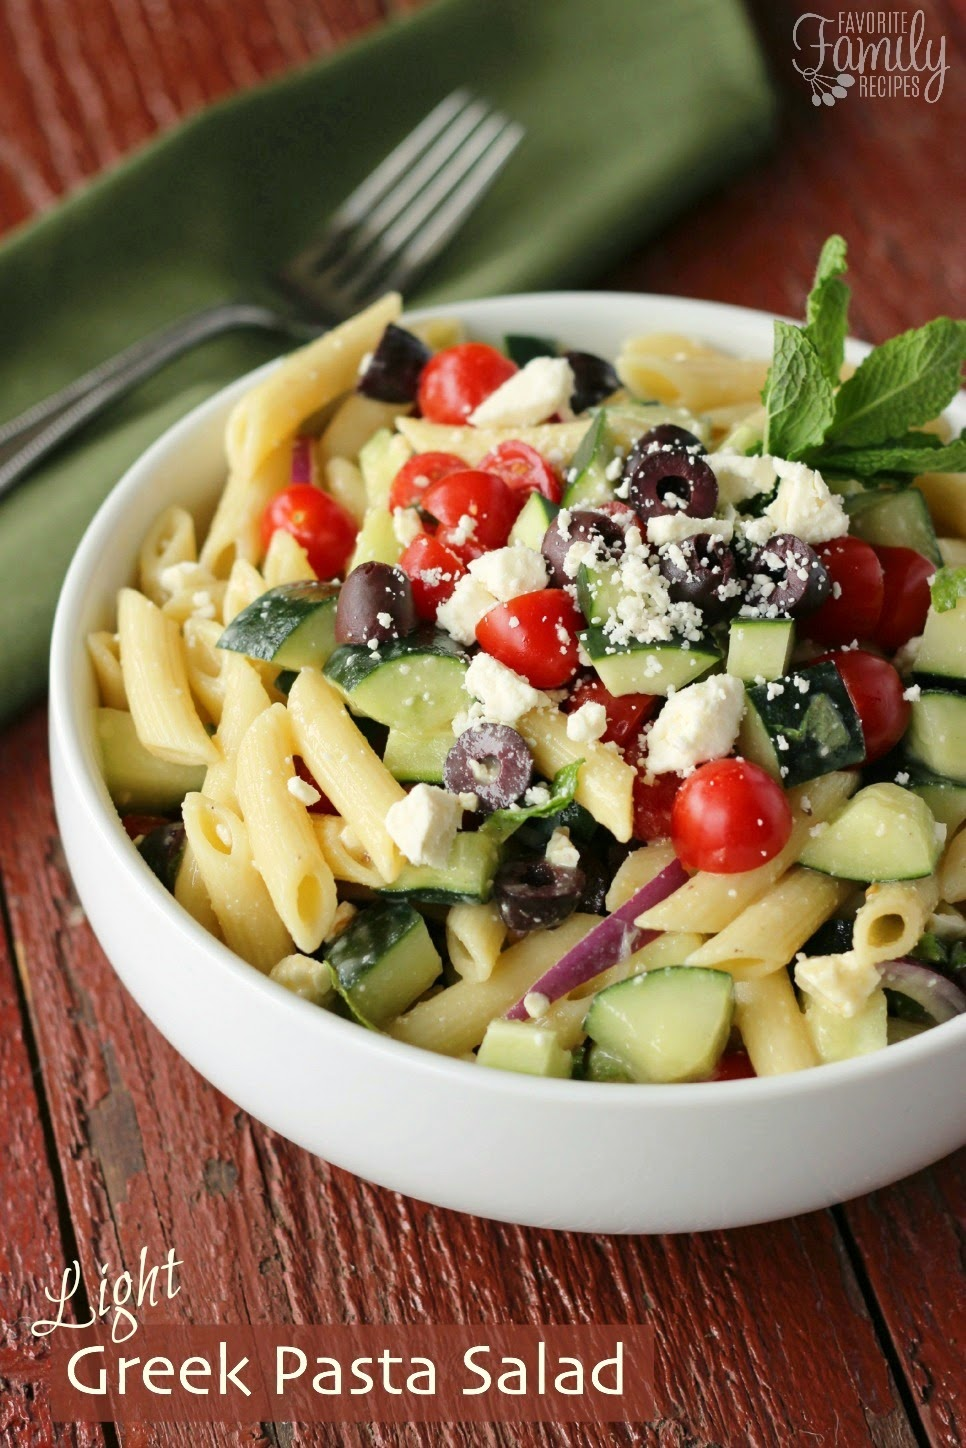 The Bestest Recipes Online: Light Greek Pasta Salad